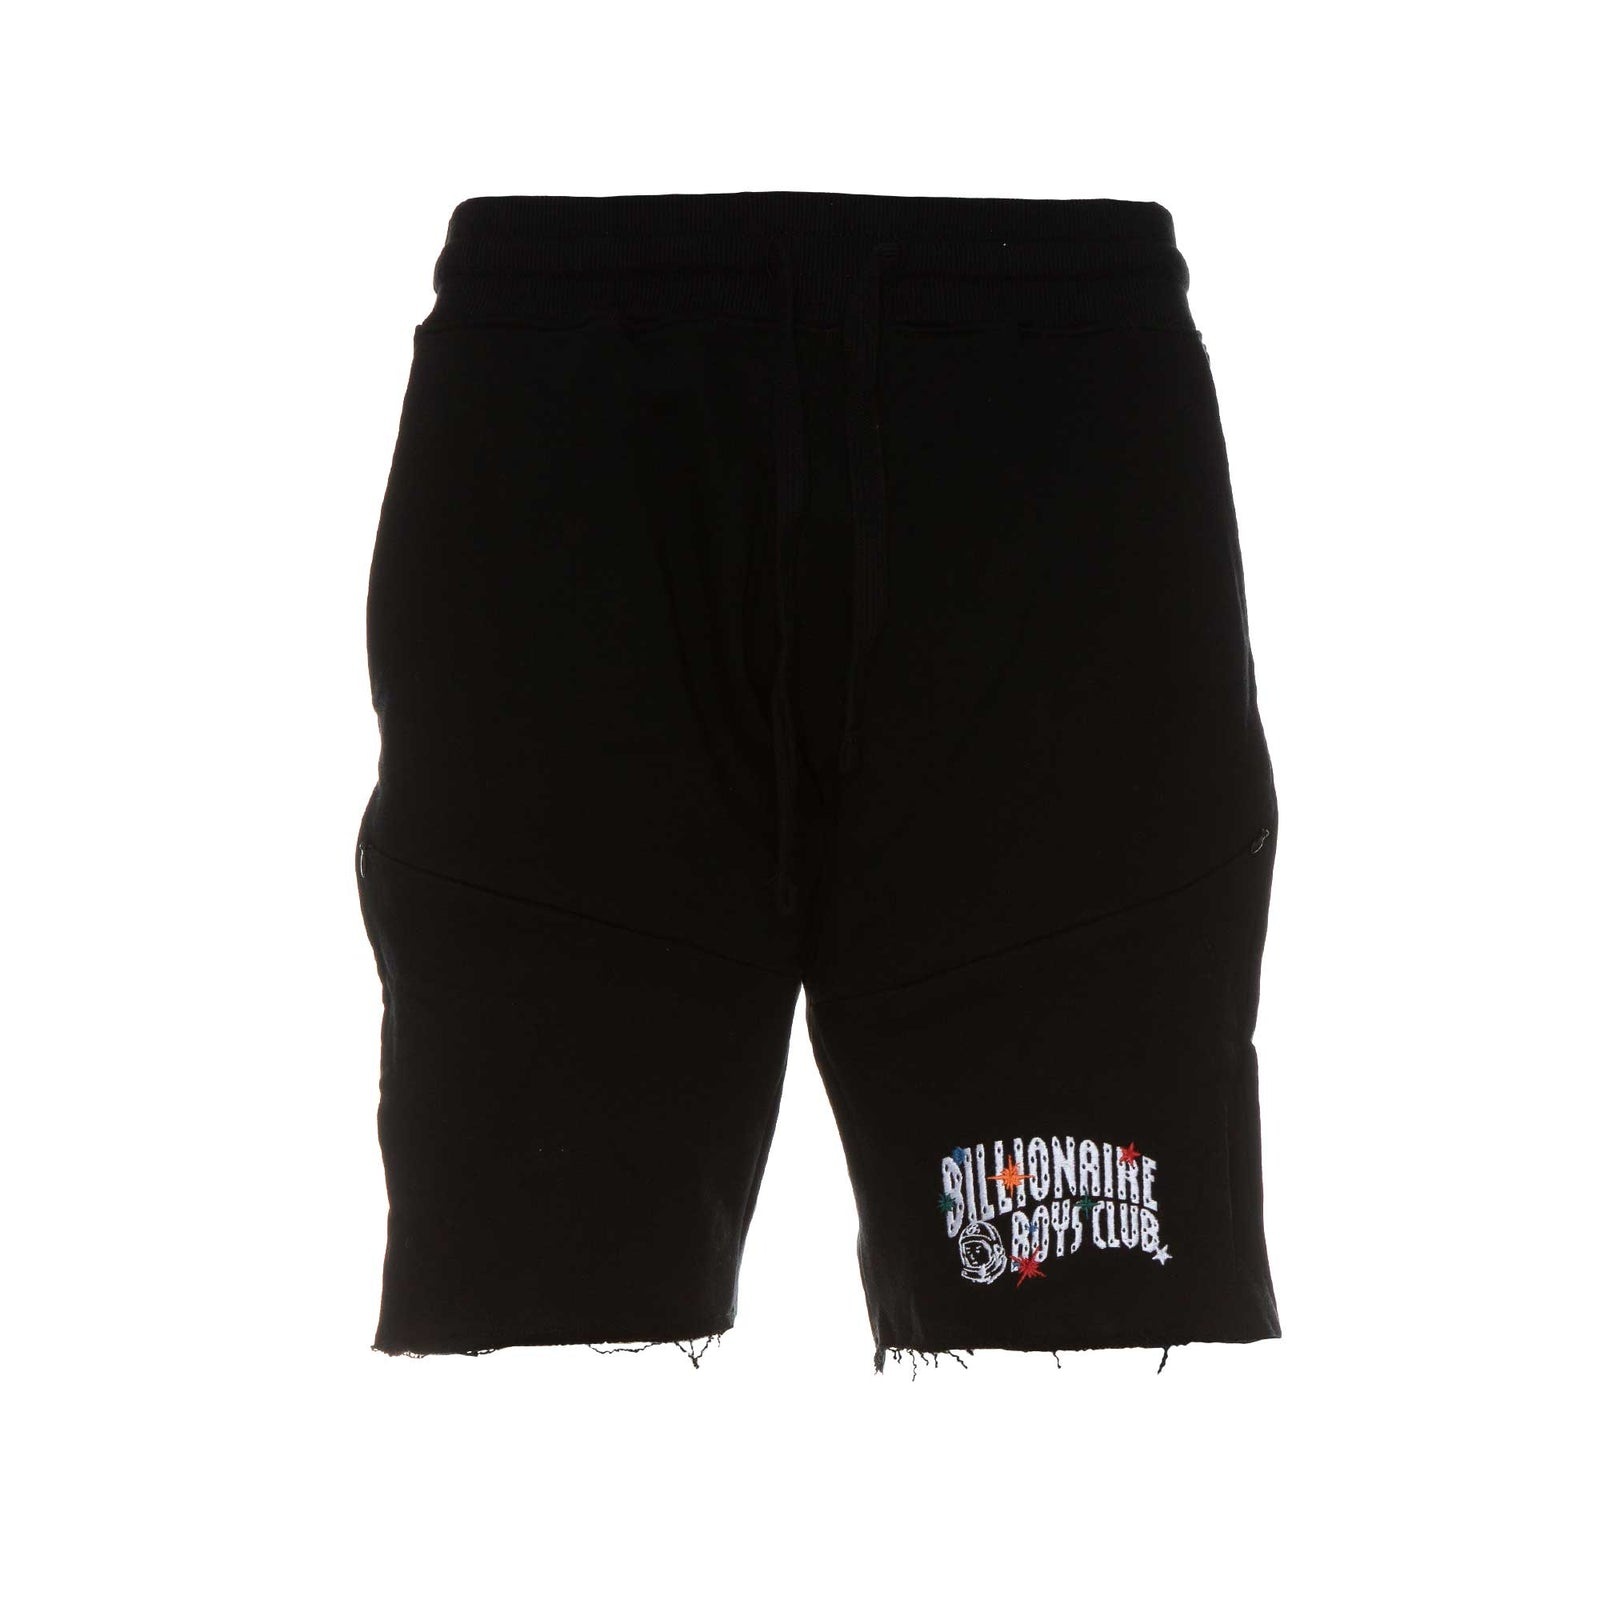 Billionaire Boys Club Men's Constellation Men's Shorts Spring 19' Delivery II.